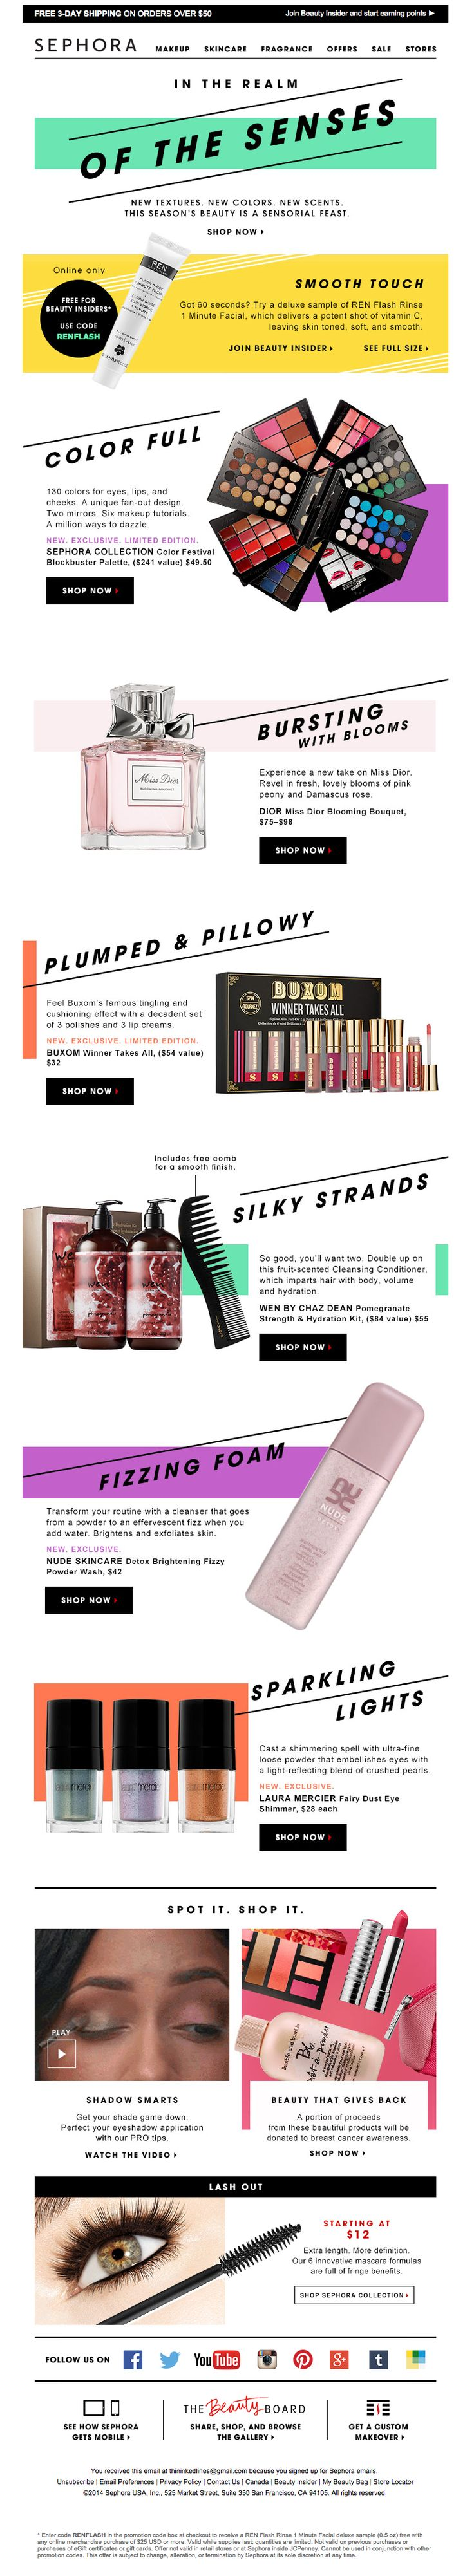 Sephora e-newsletter